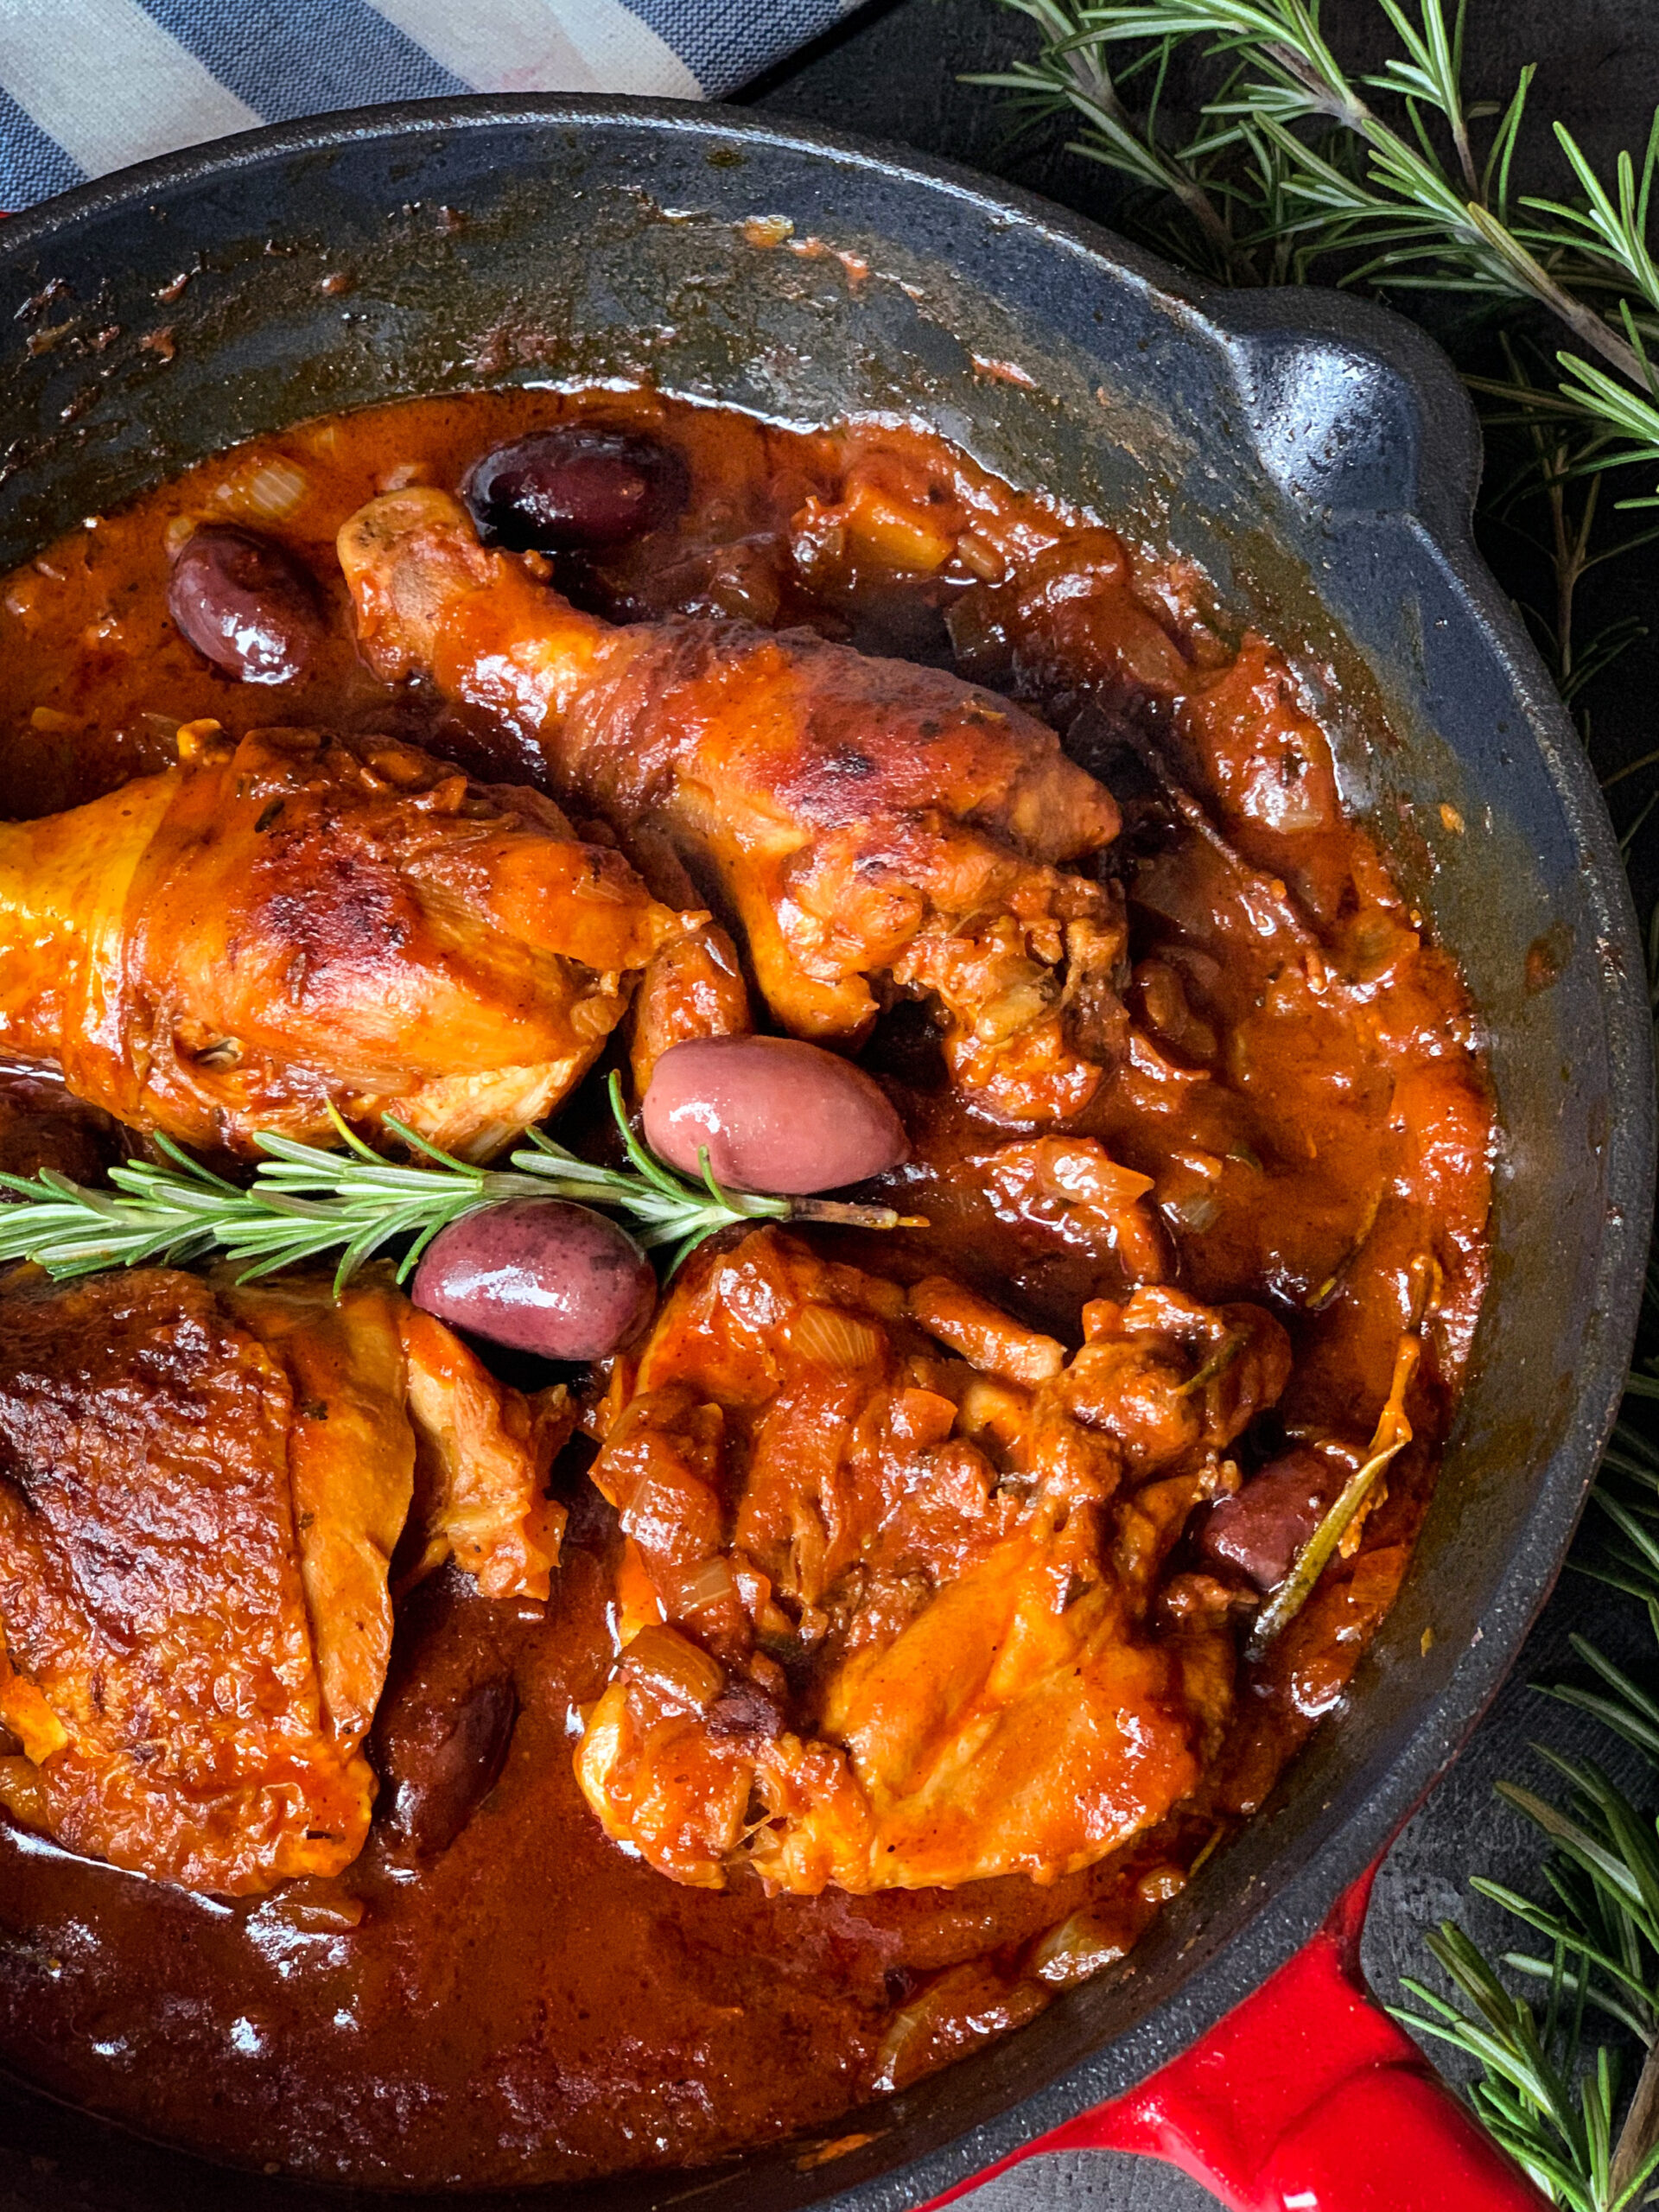 Picture of Mediterranean style chicken in sauce with wine, tomato and Mediterranean herbs